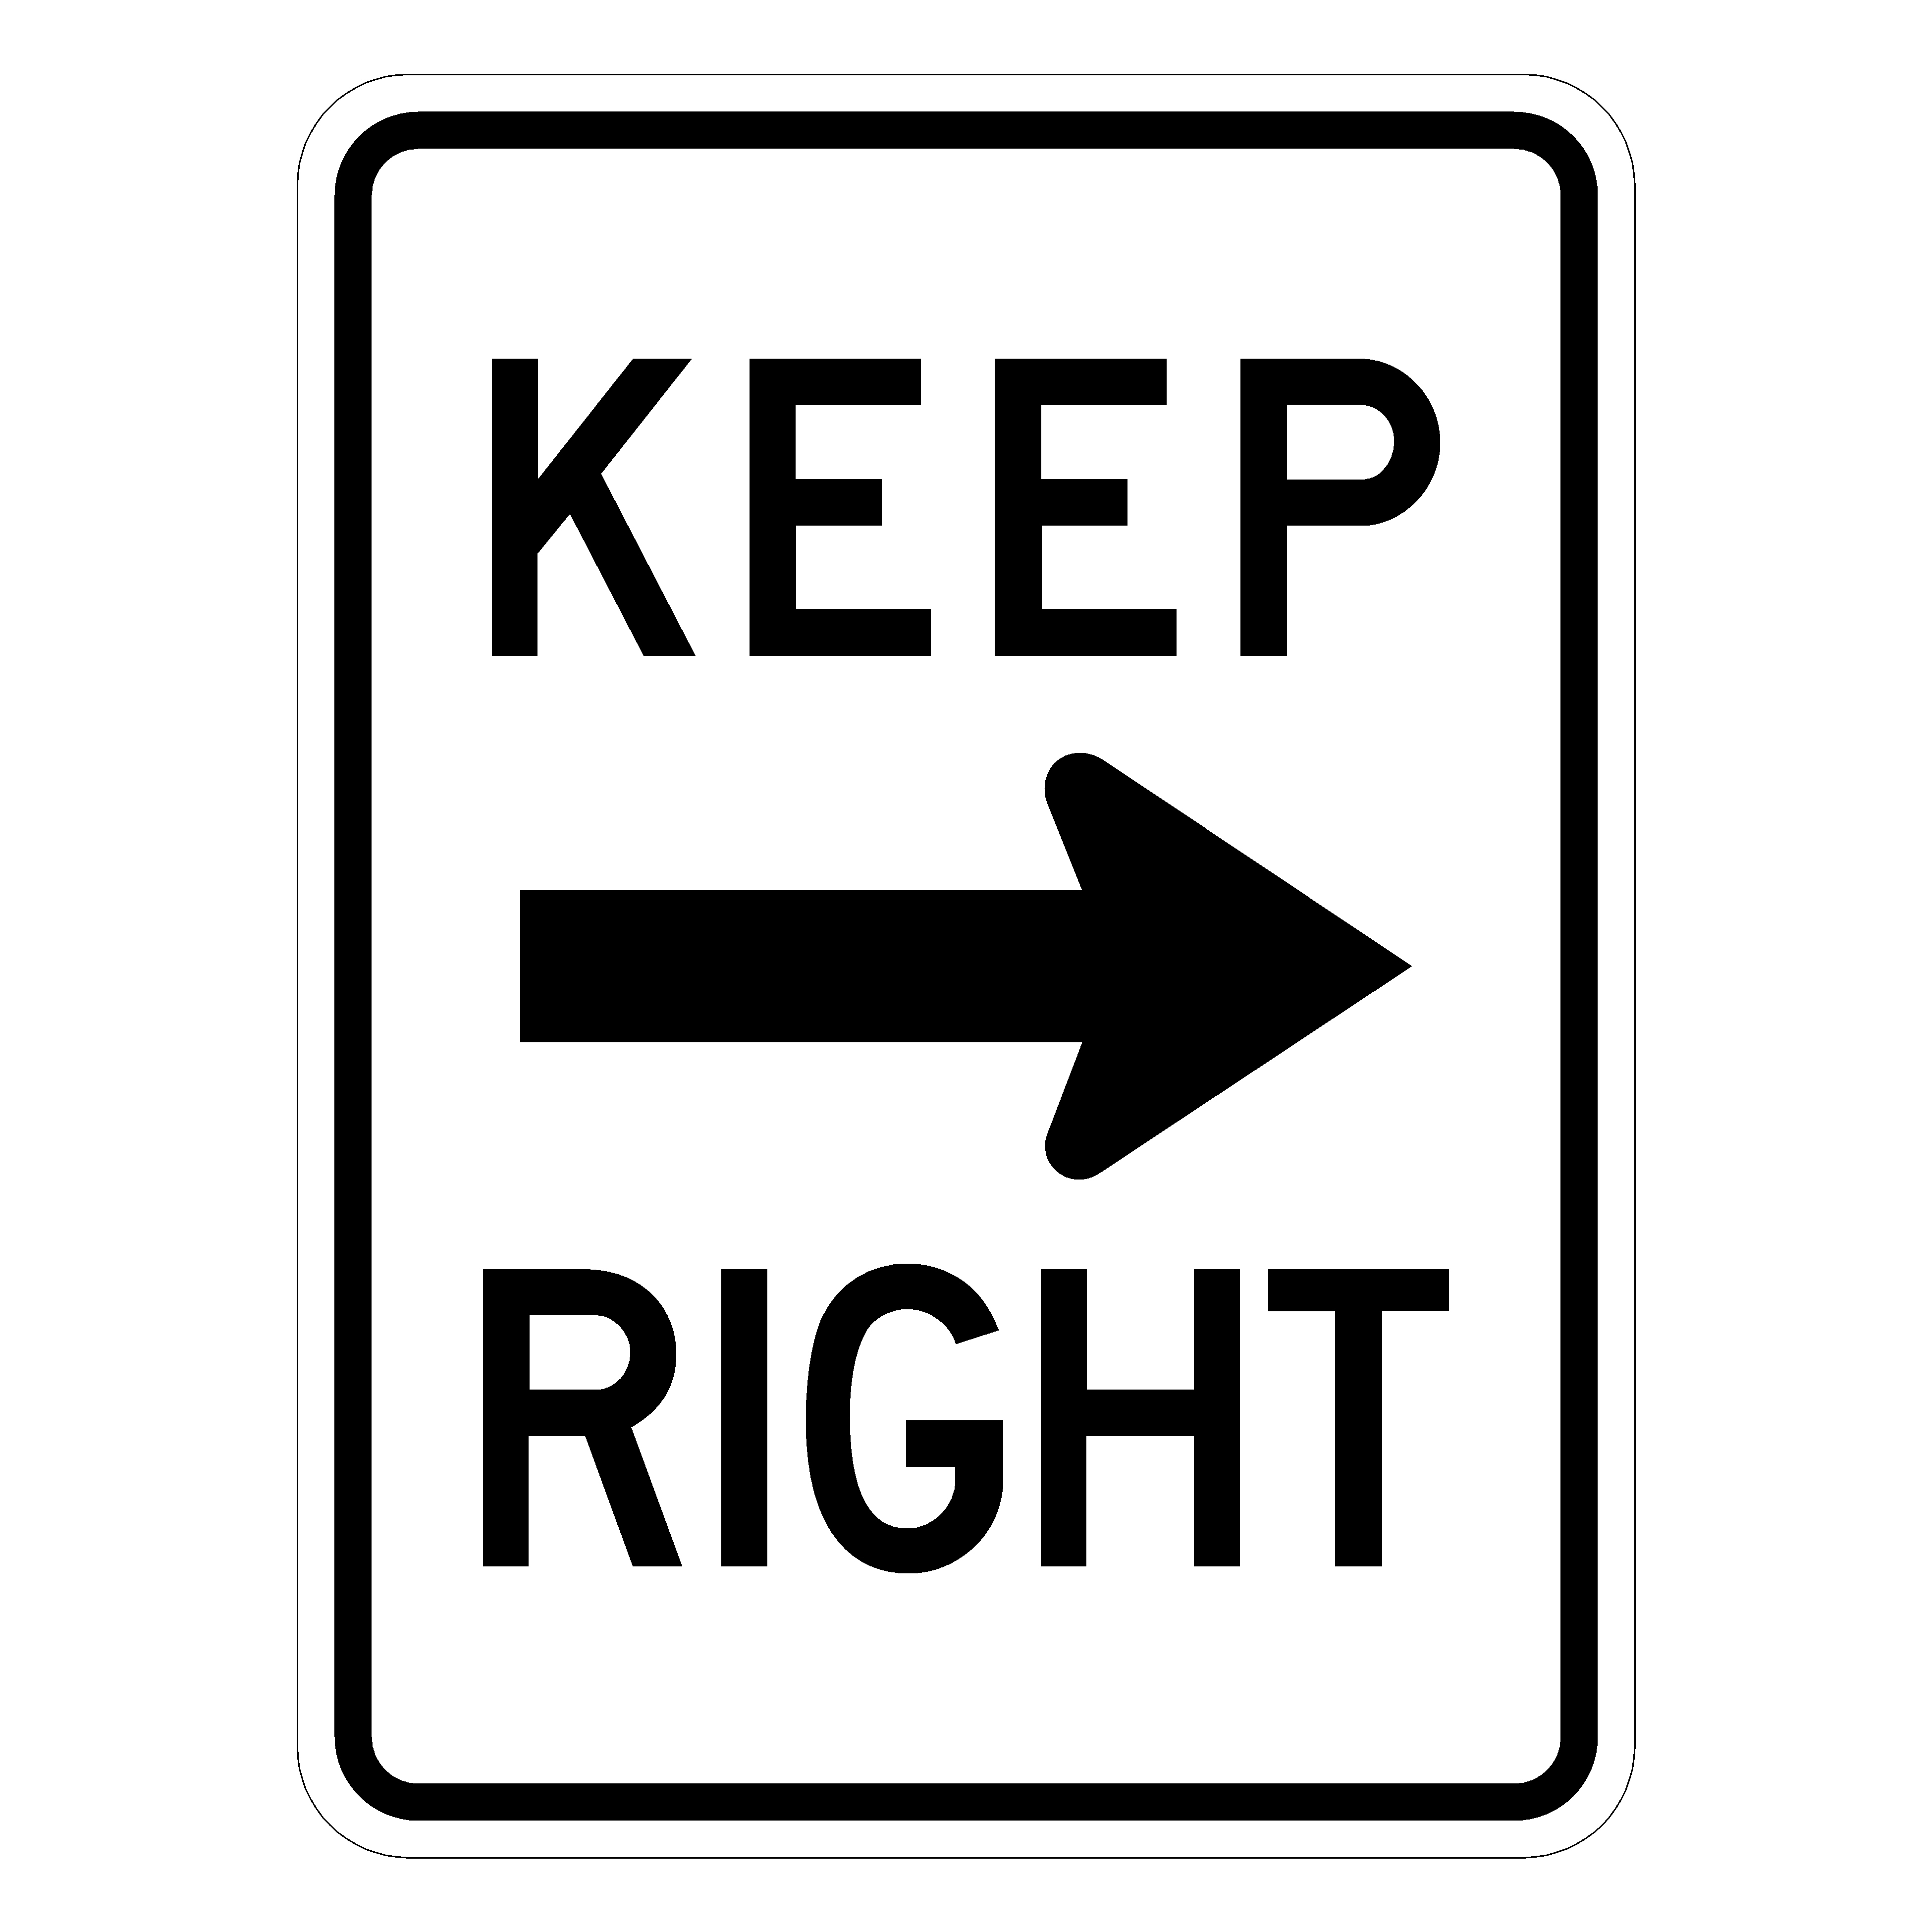 Keep Right w/ Right Arrow R4-7A Traffic Sign - R4-7A30 HIP